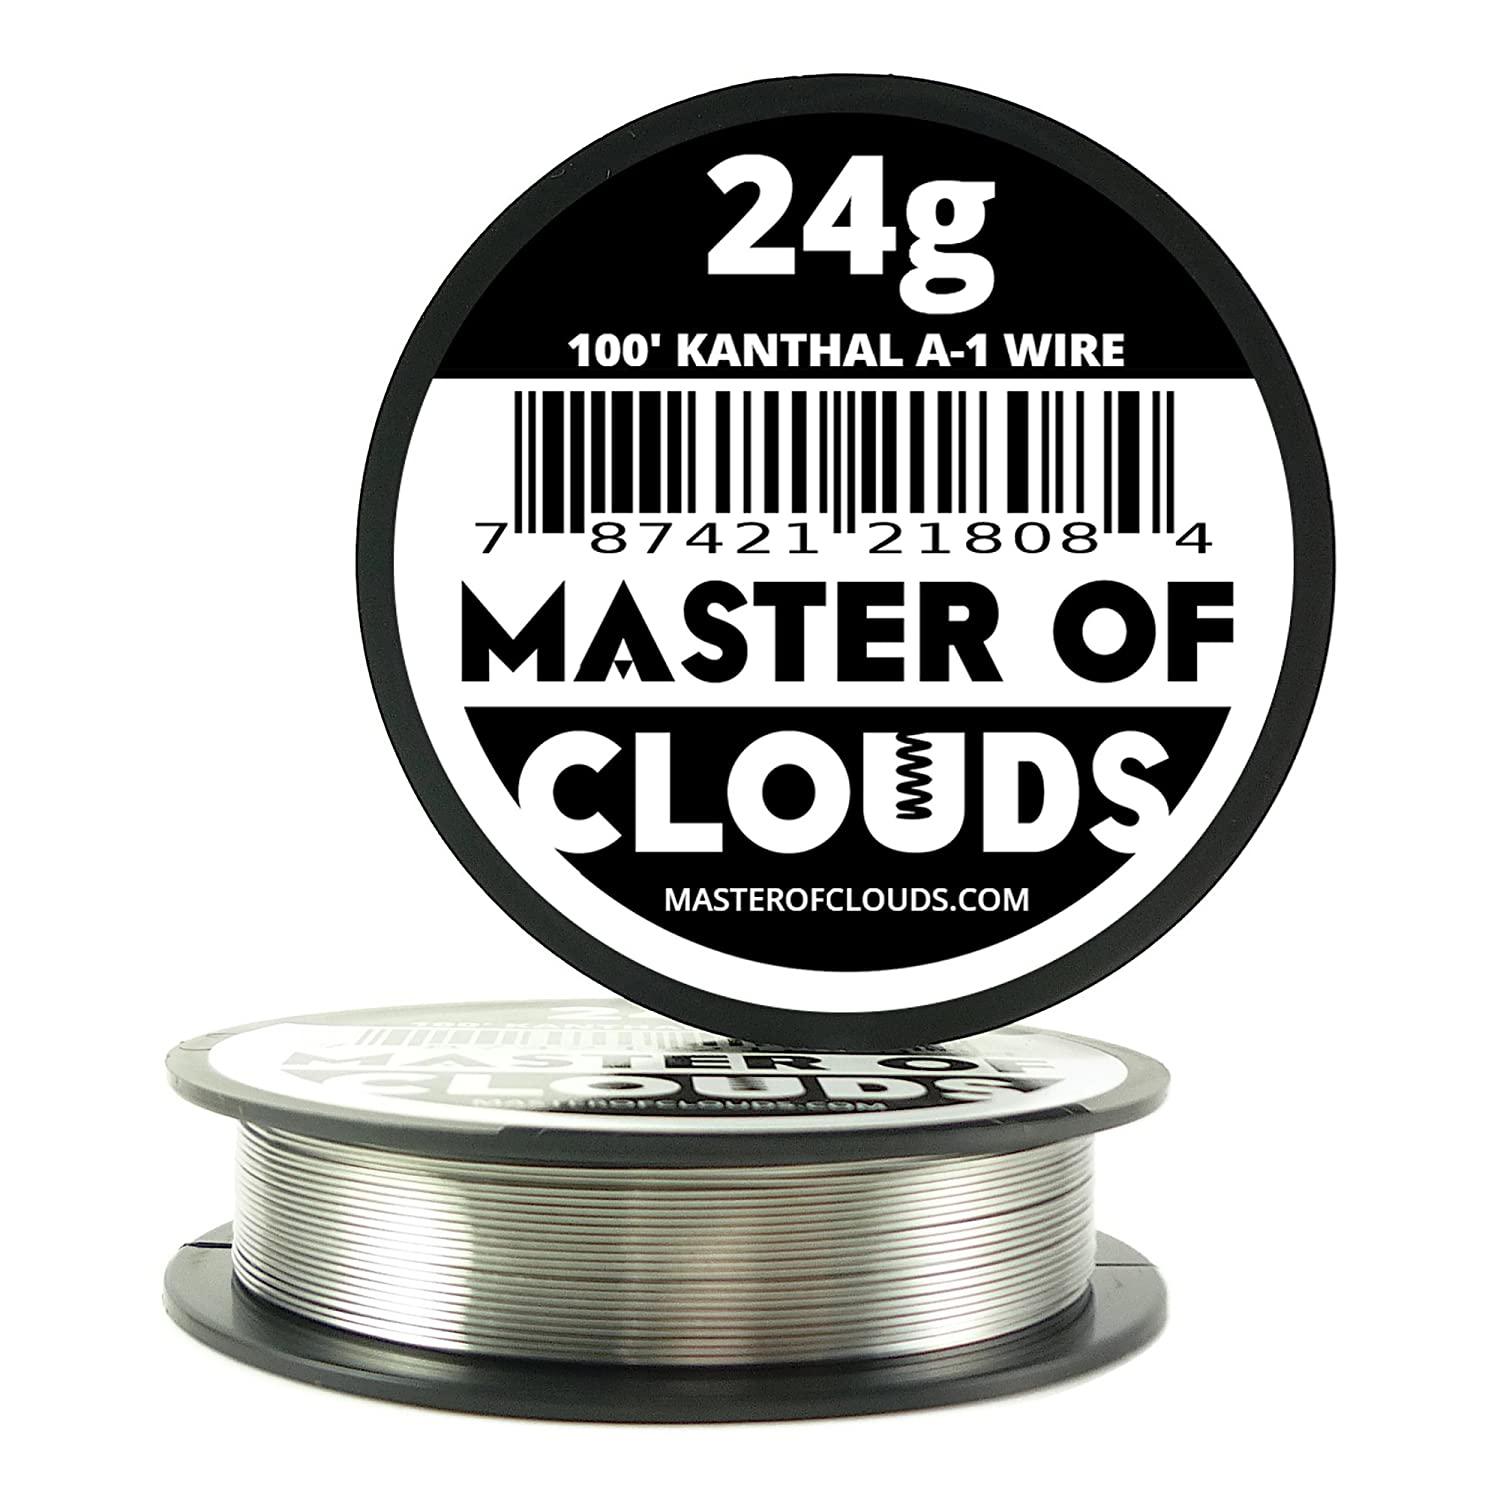 100 ft 24 gauge kanthal a1 resistance wire awg 100 lengths 100 ft 24 gauge kanthal a1 resistance wire awg 100 lengths amazon keyboard keysfo Choice Image